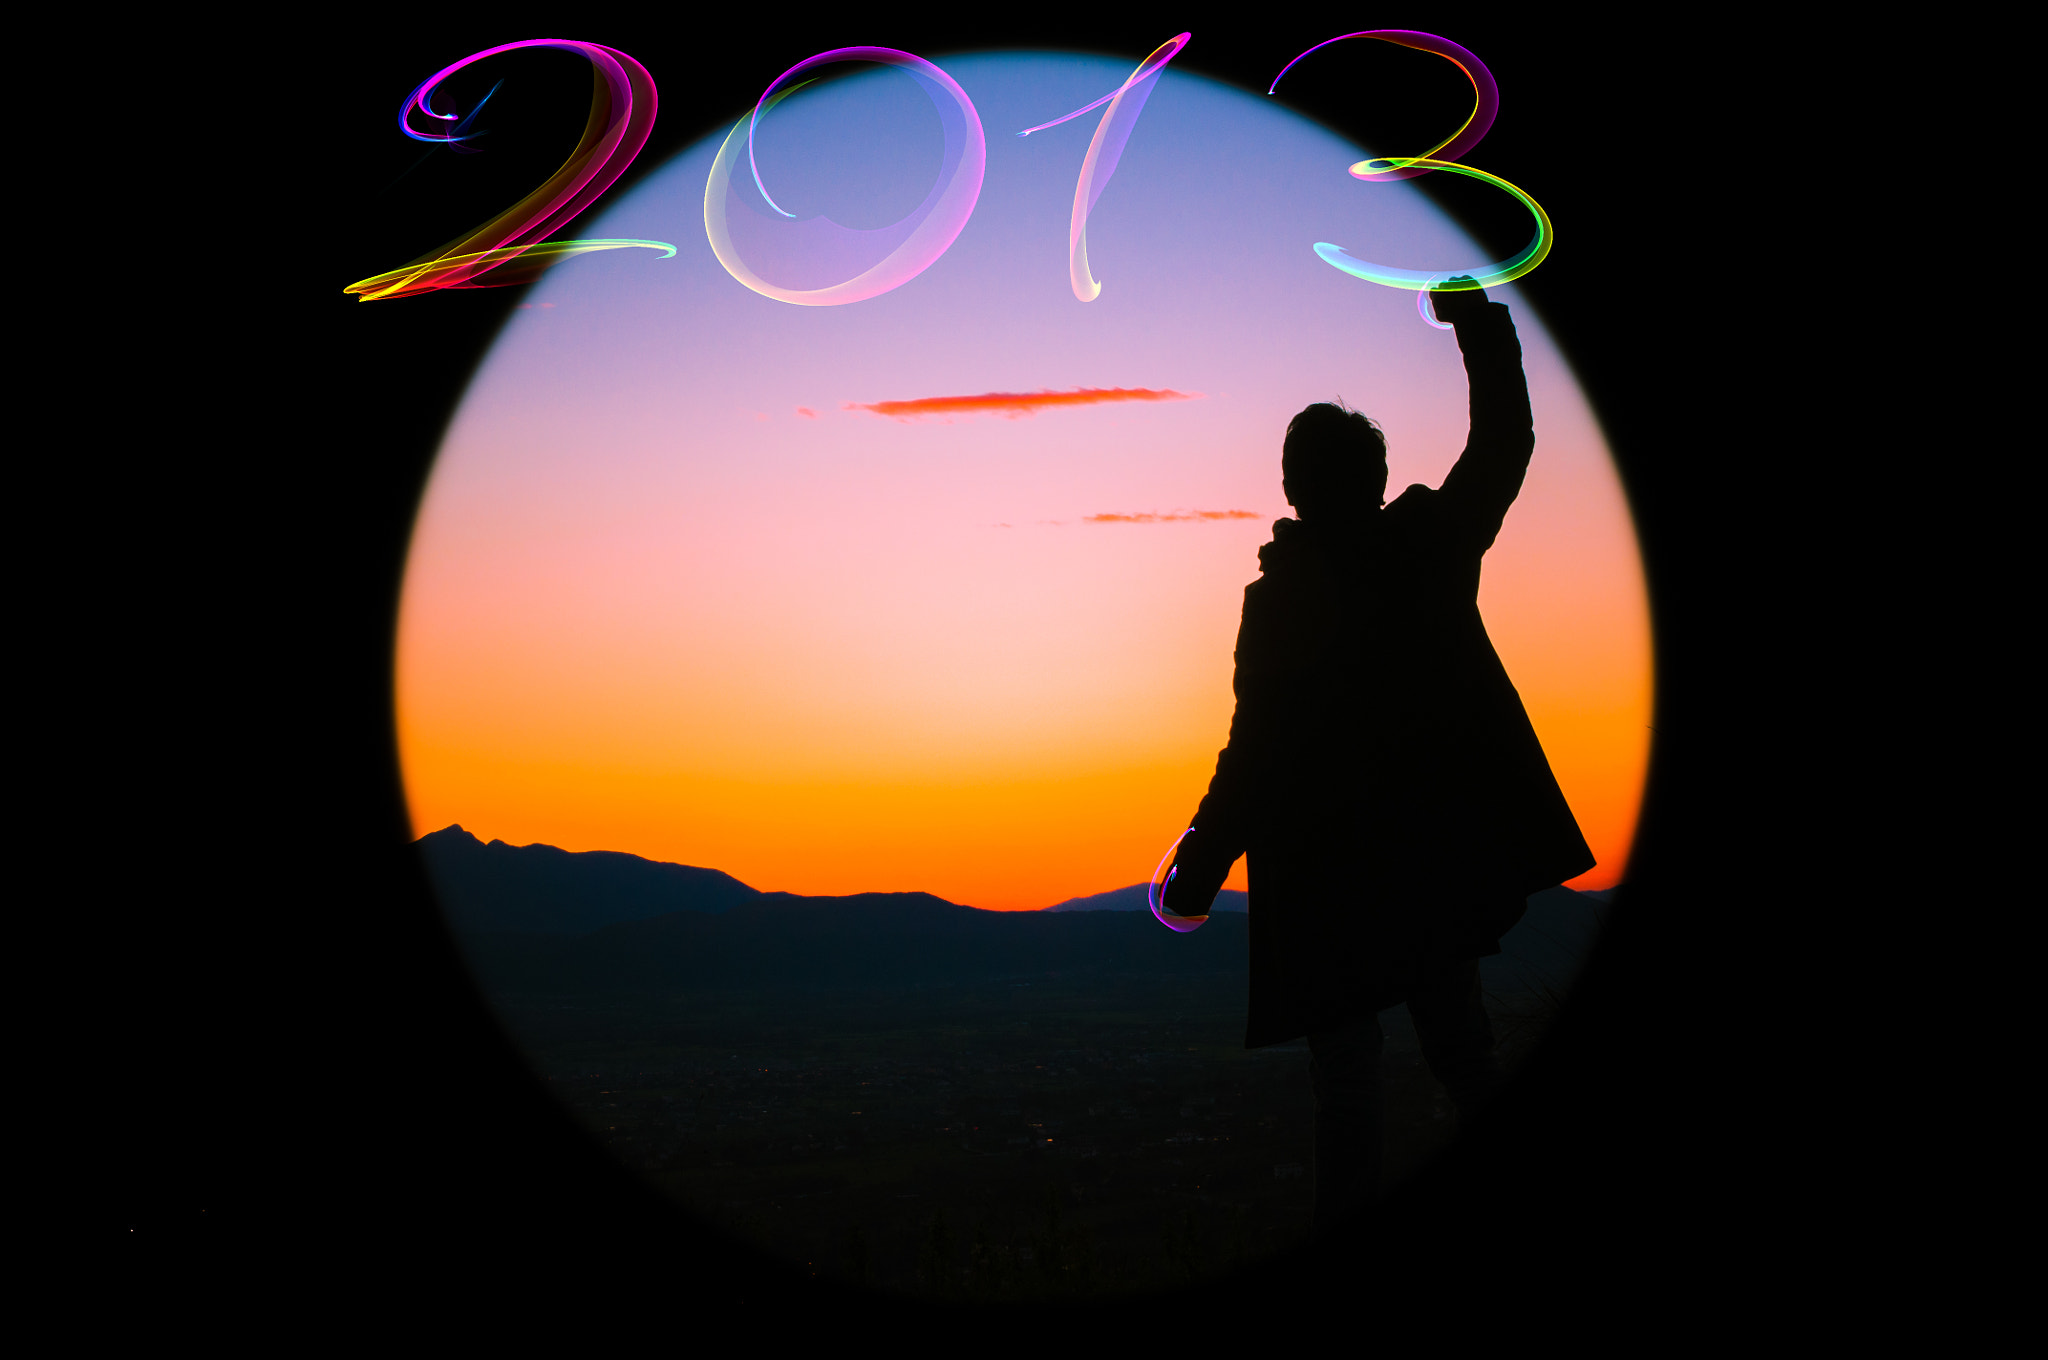 Photograph Happy 2013 - Greetings Card - 1 by Simone Ciliberti on 500px